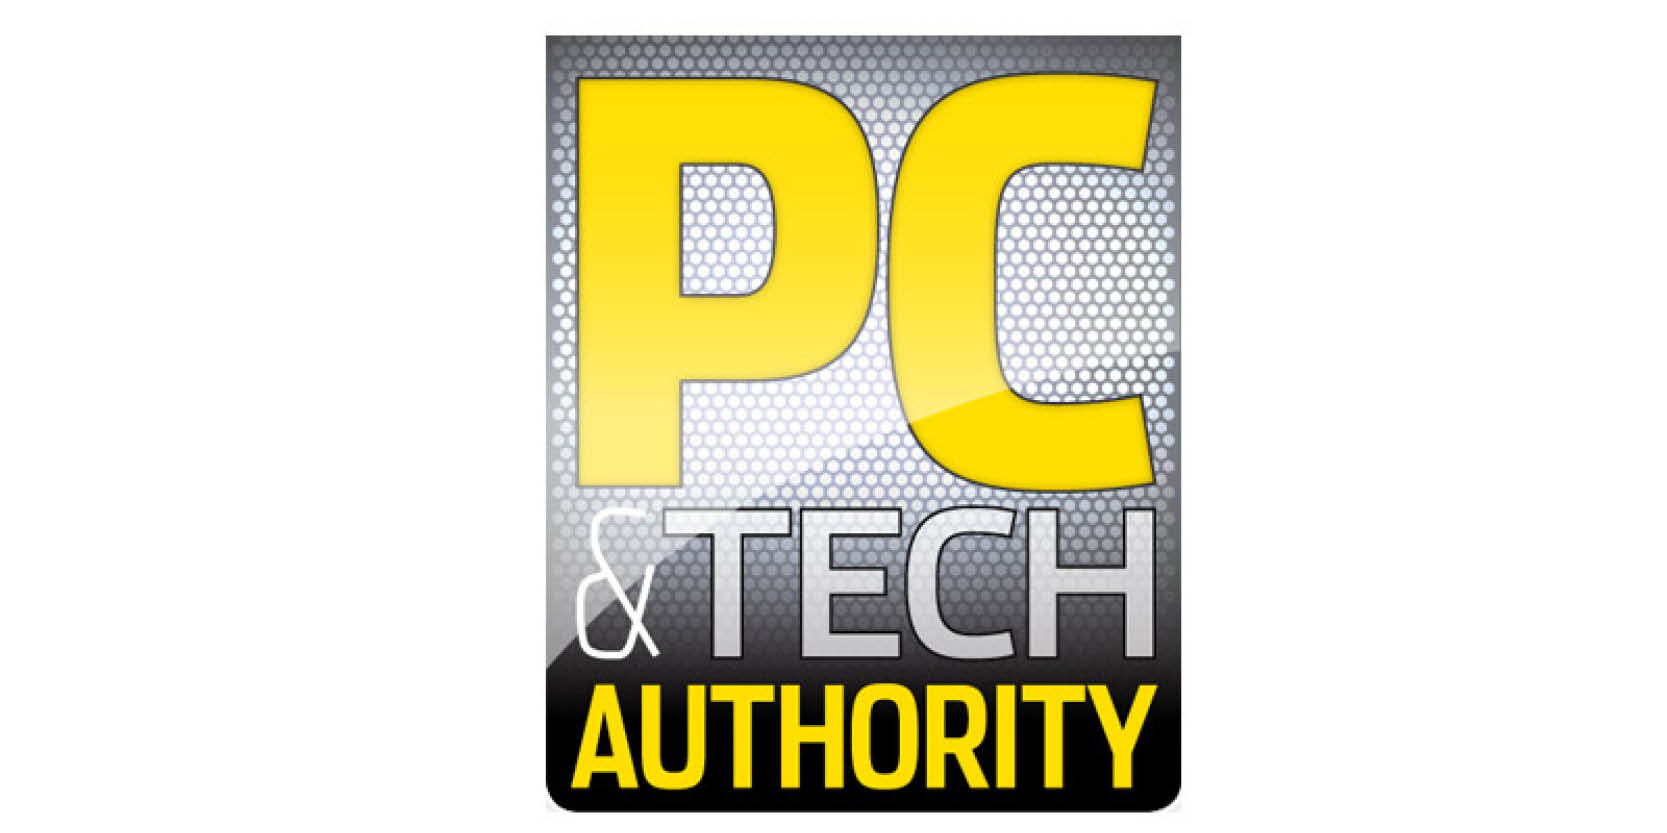 PC & Tech Authority: Are hackers playing the fame game?